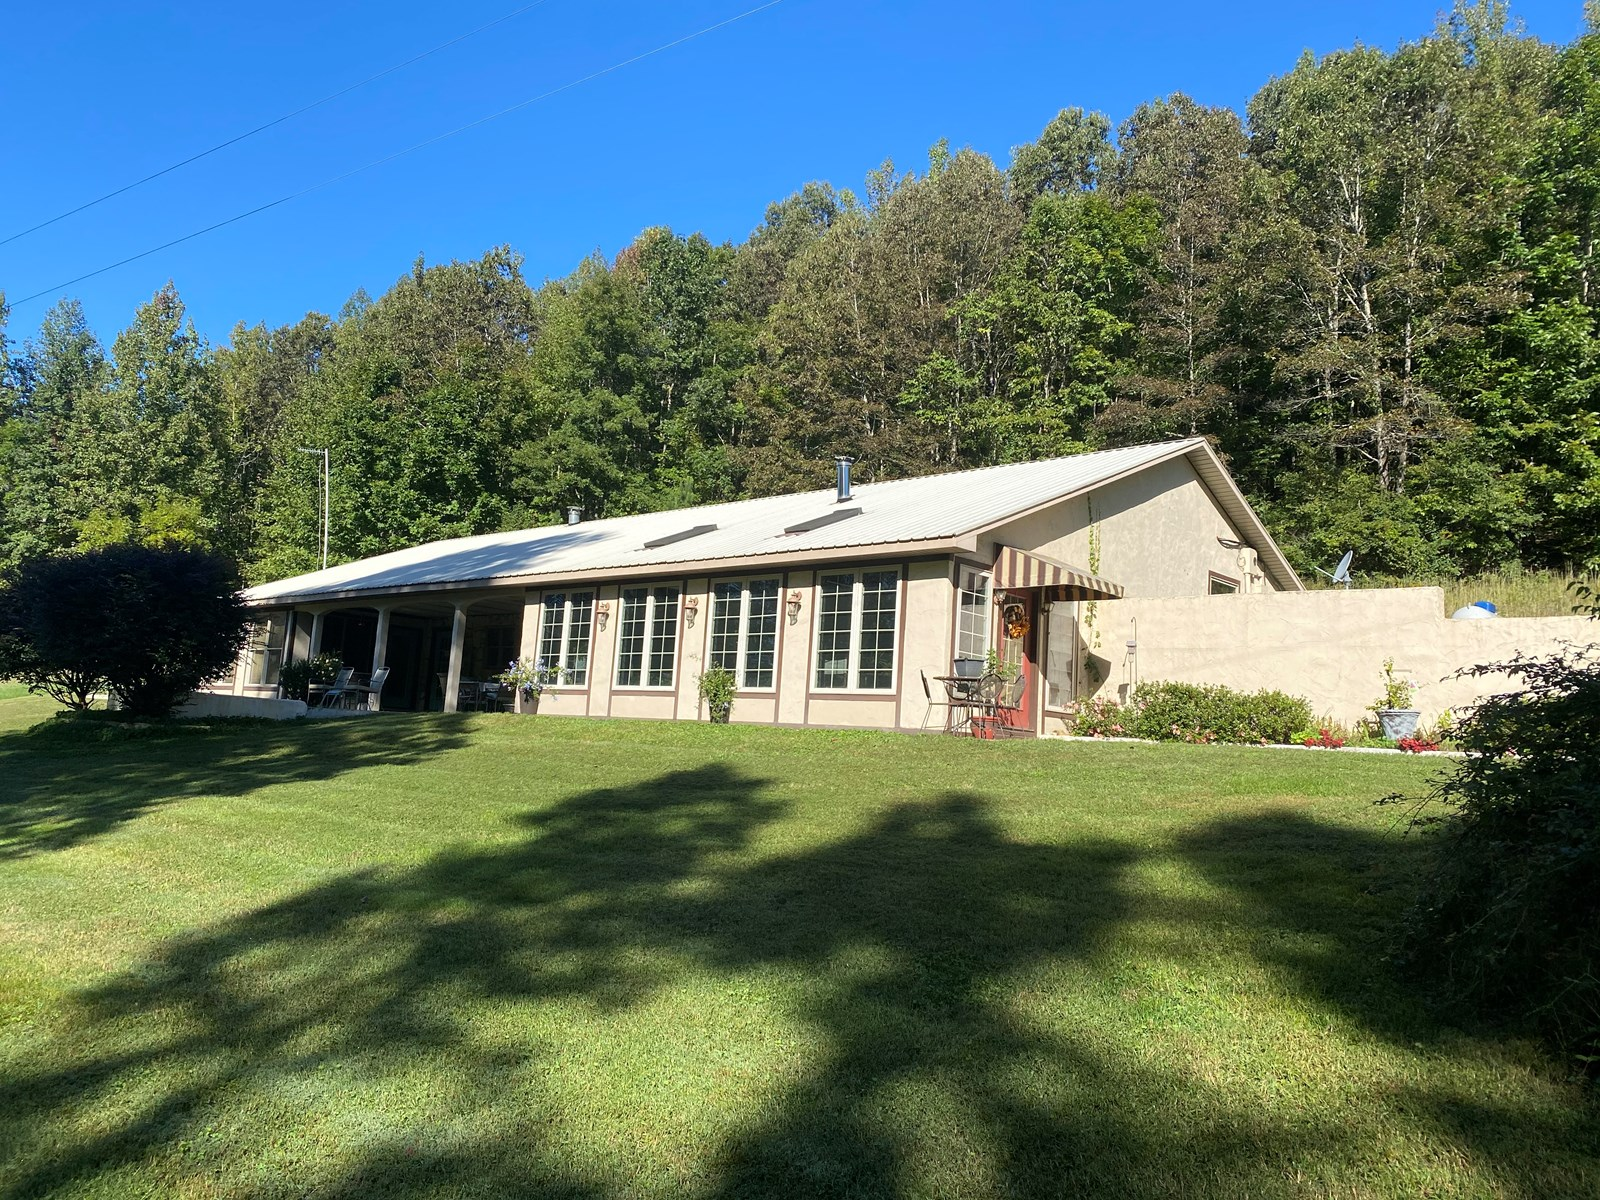 FARM FOR SALE IN TENNESSEE WITH HOUSE, CABIN, SHOPS, CREEK